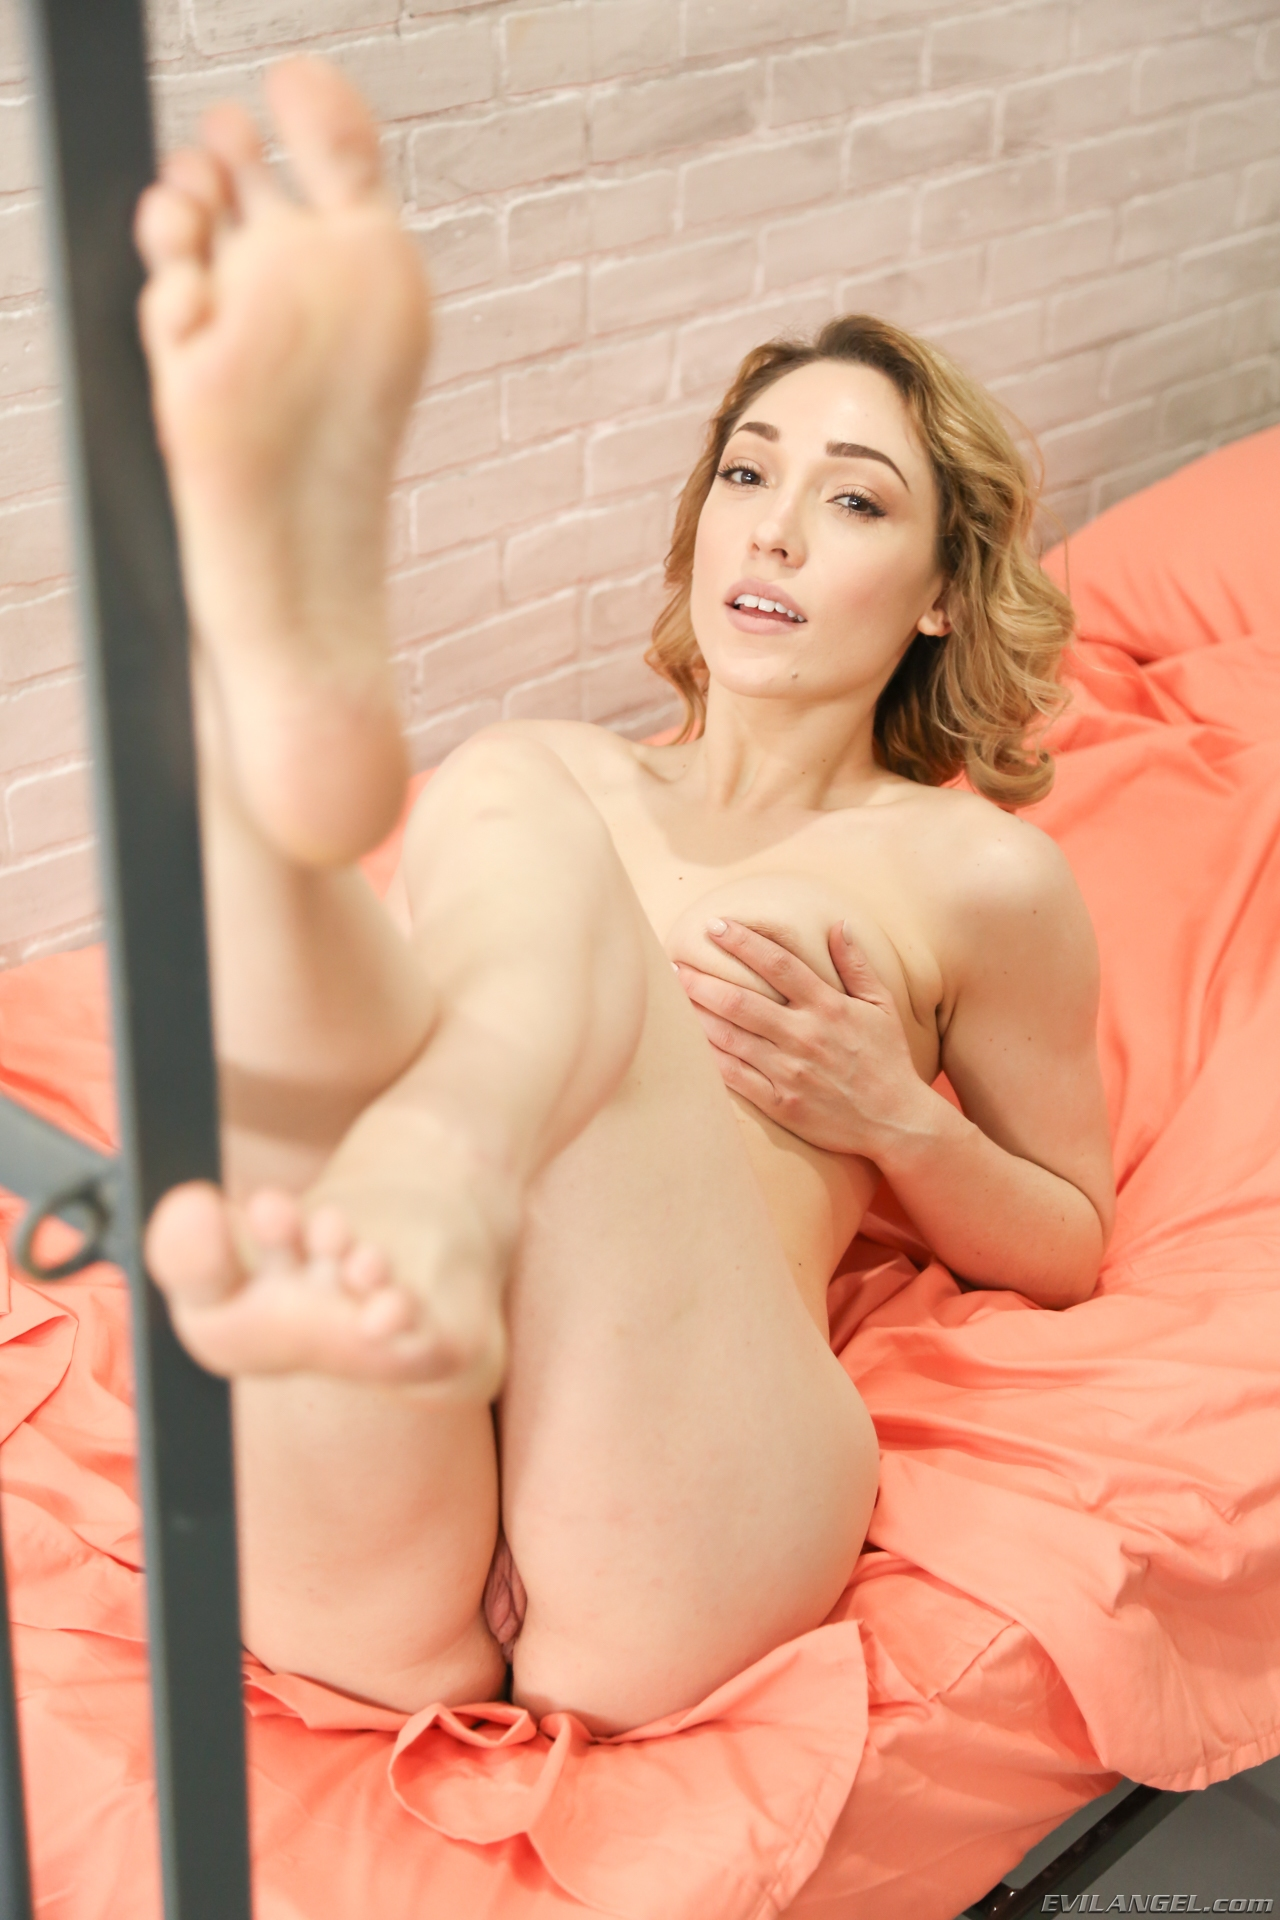 desperate caged in young wife gives sexy feetmassage  #3